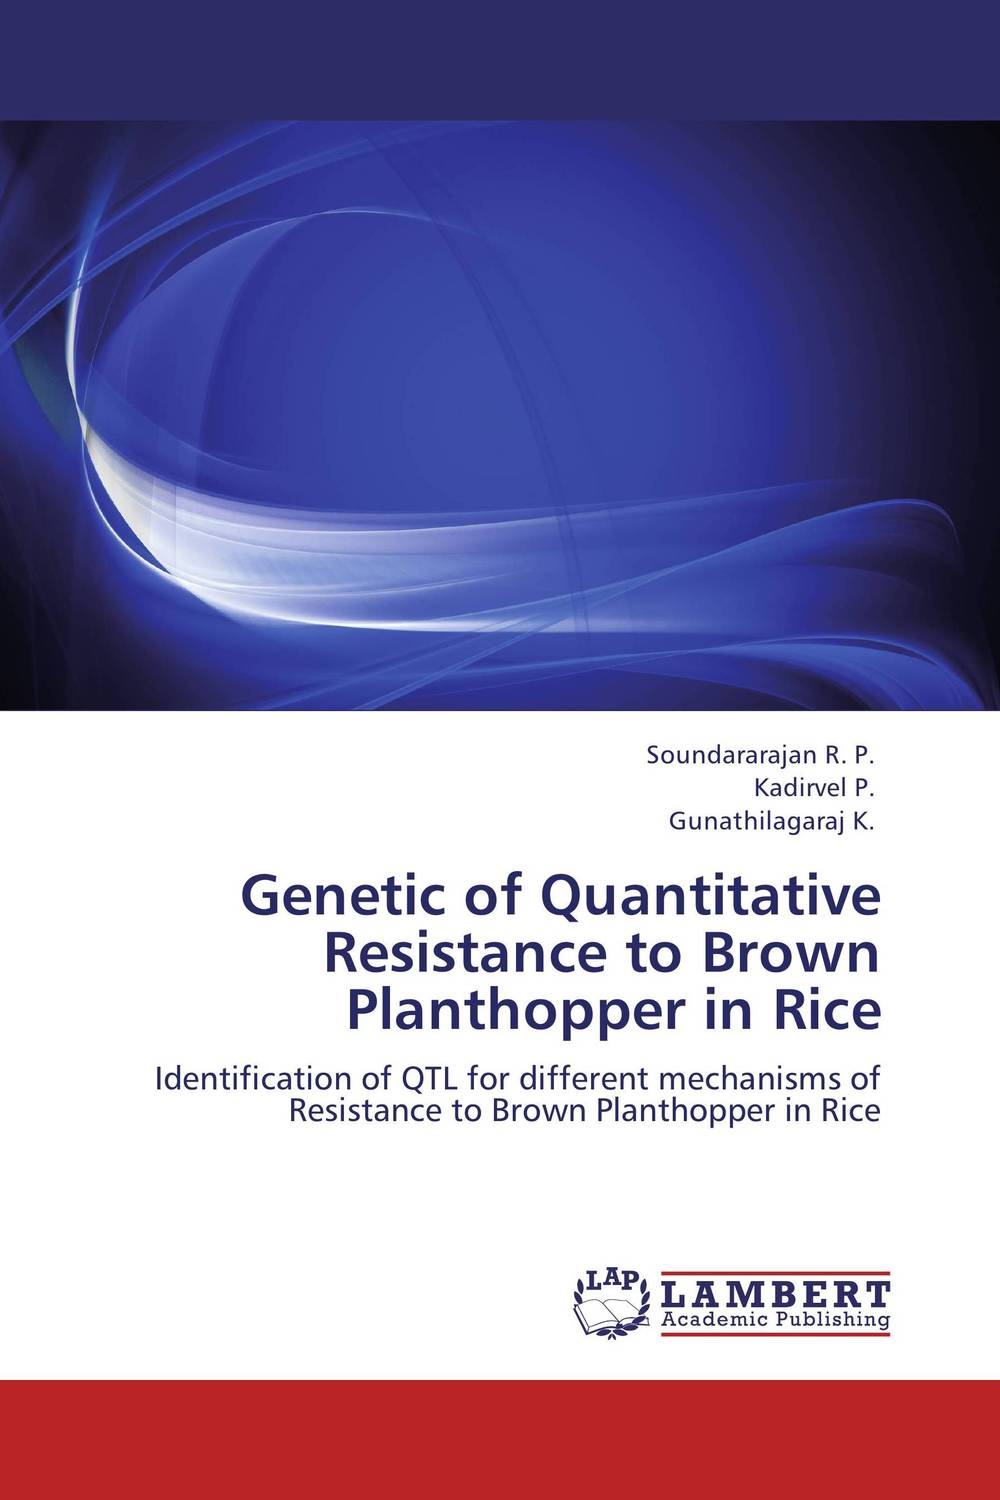 Genetic of Quantitative Resistance to Brown Planthopper in Rice wheat breeding for rust resistance